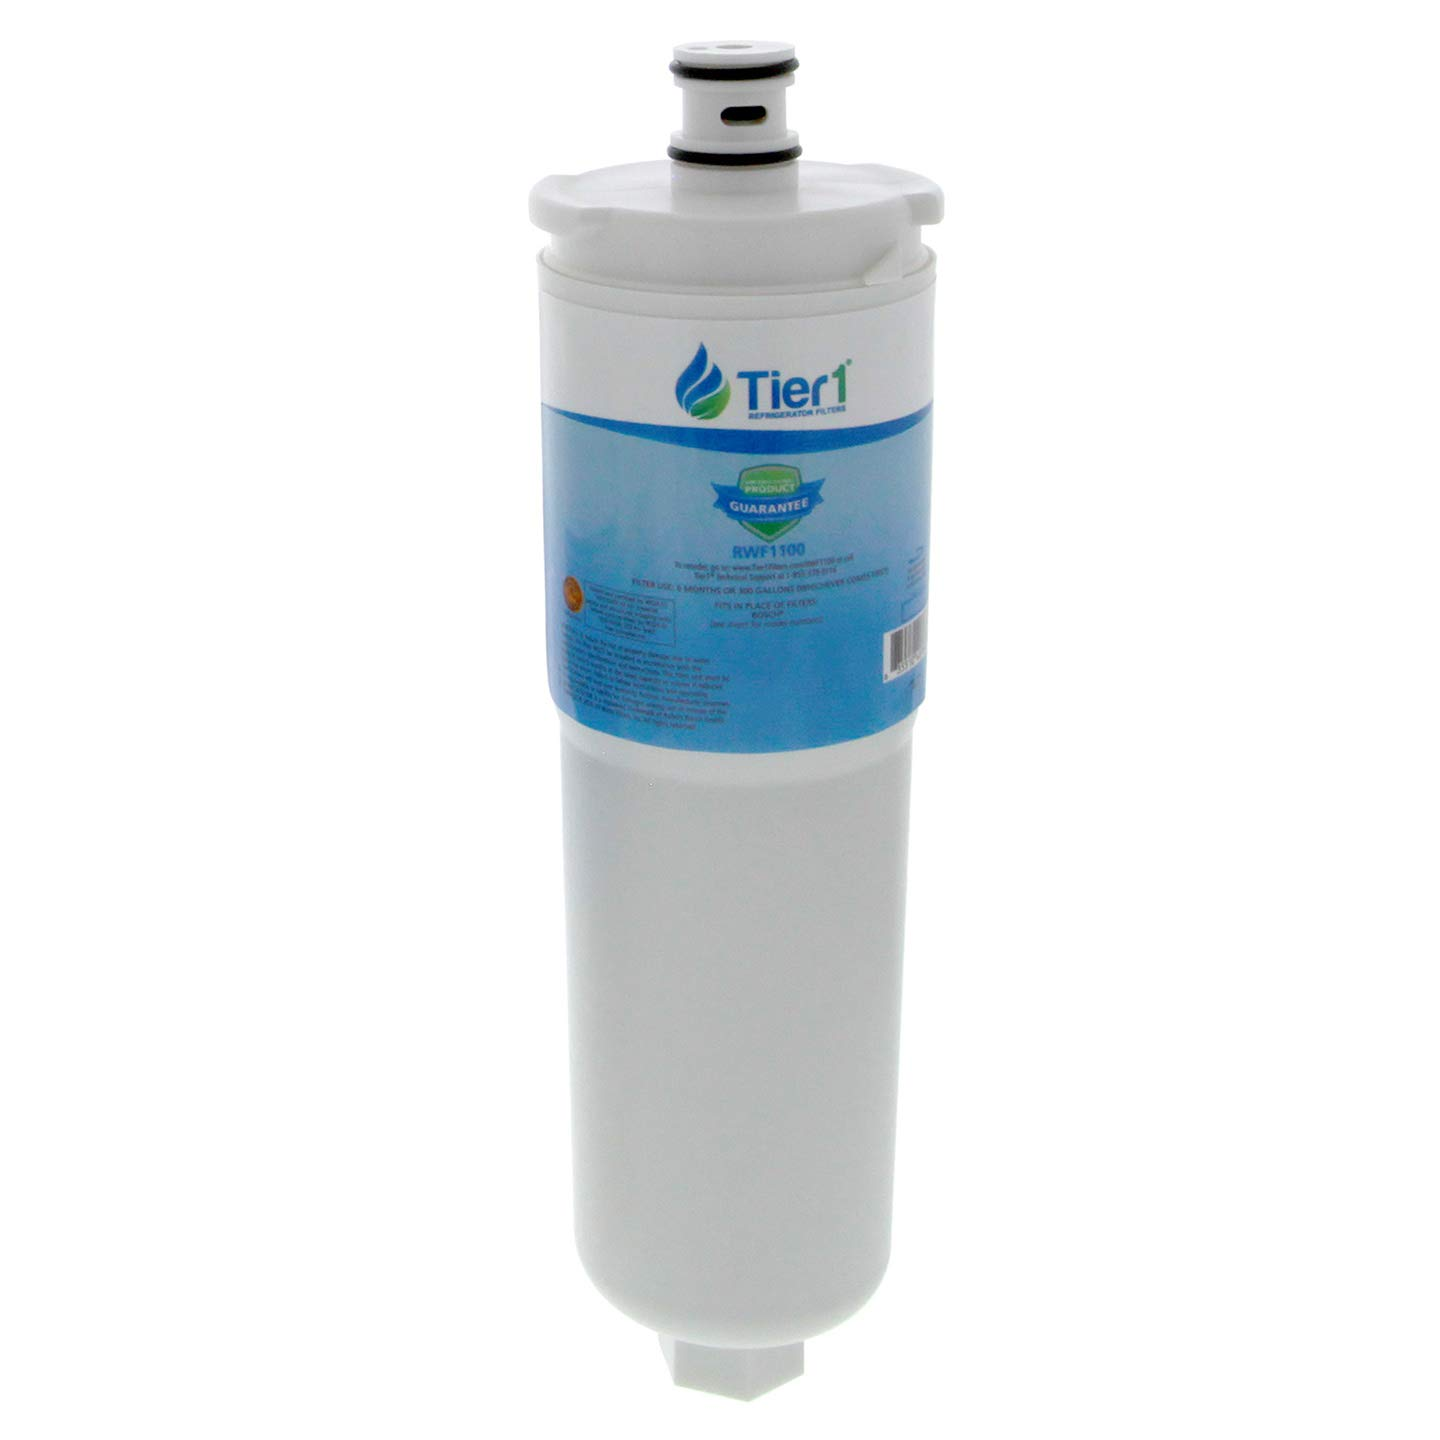 Tier1 Replacement for Bosch 640565, Whirlpool WHKF-R-PLUS, EVOLFLTR10, CS-52, AP3961137 Refrigerator Water Filter